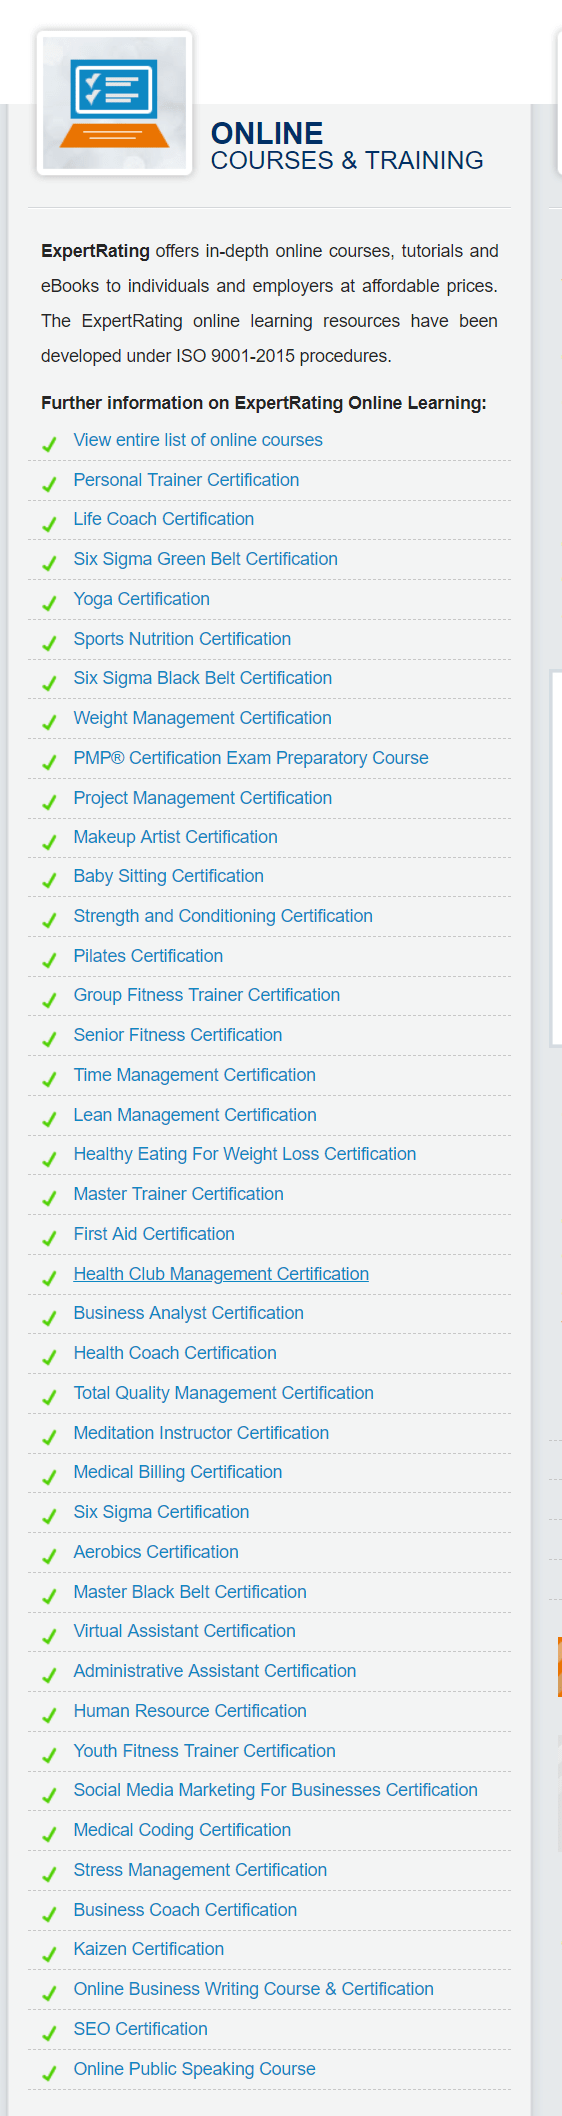 ExpertRating Courses Review- Courses Available